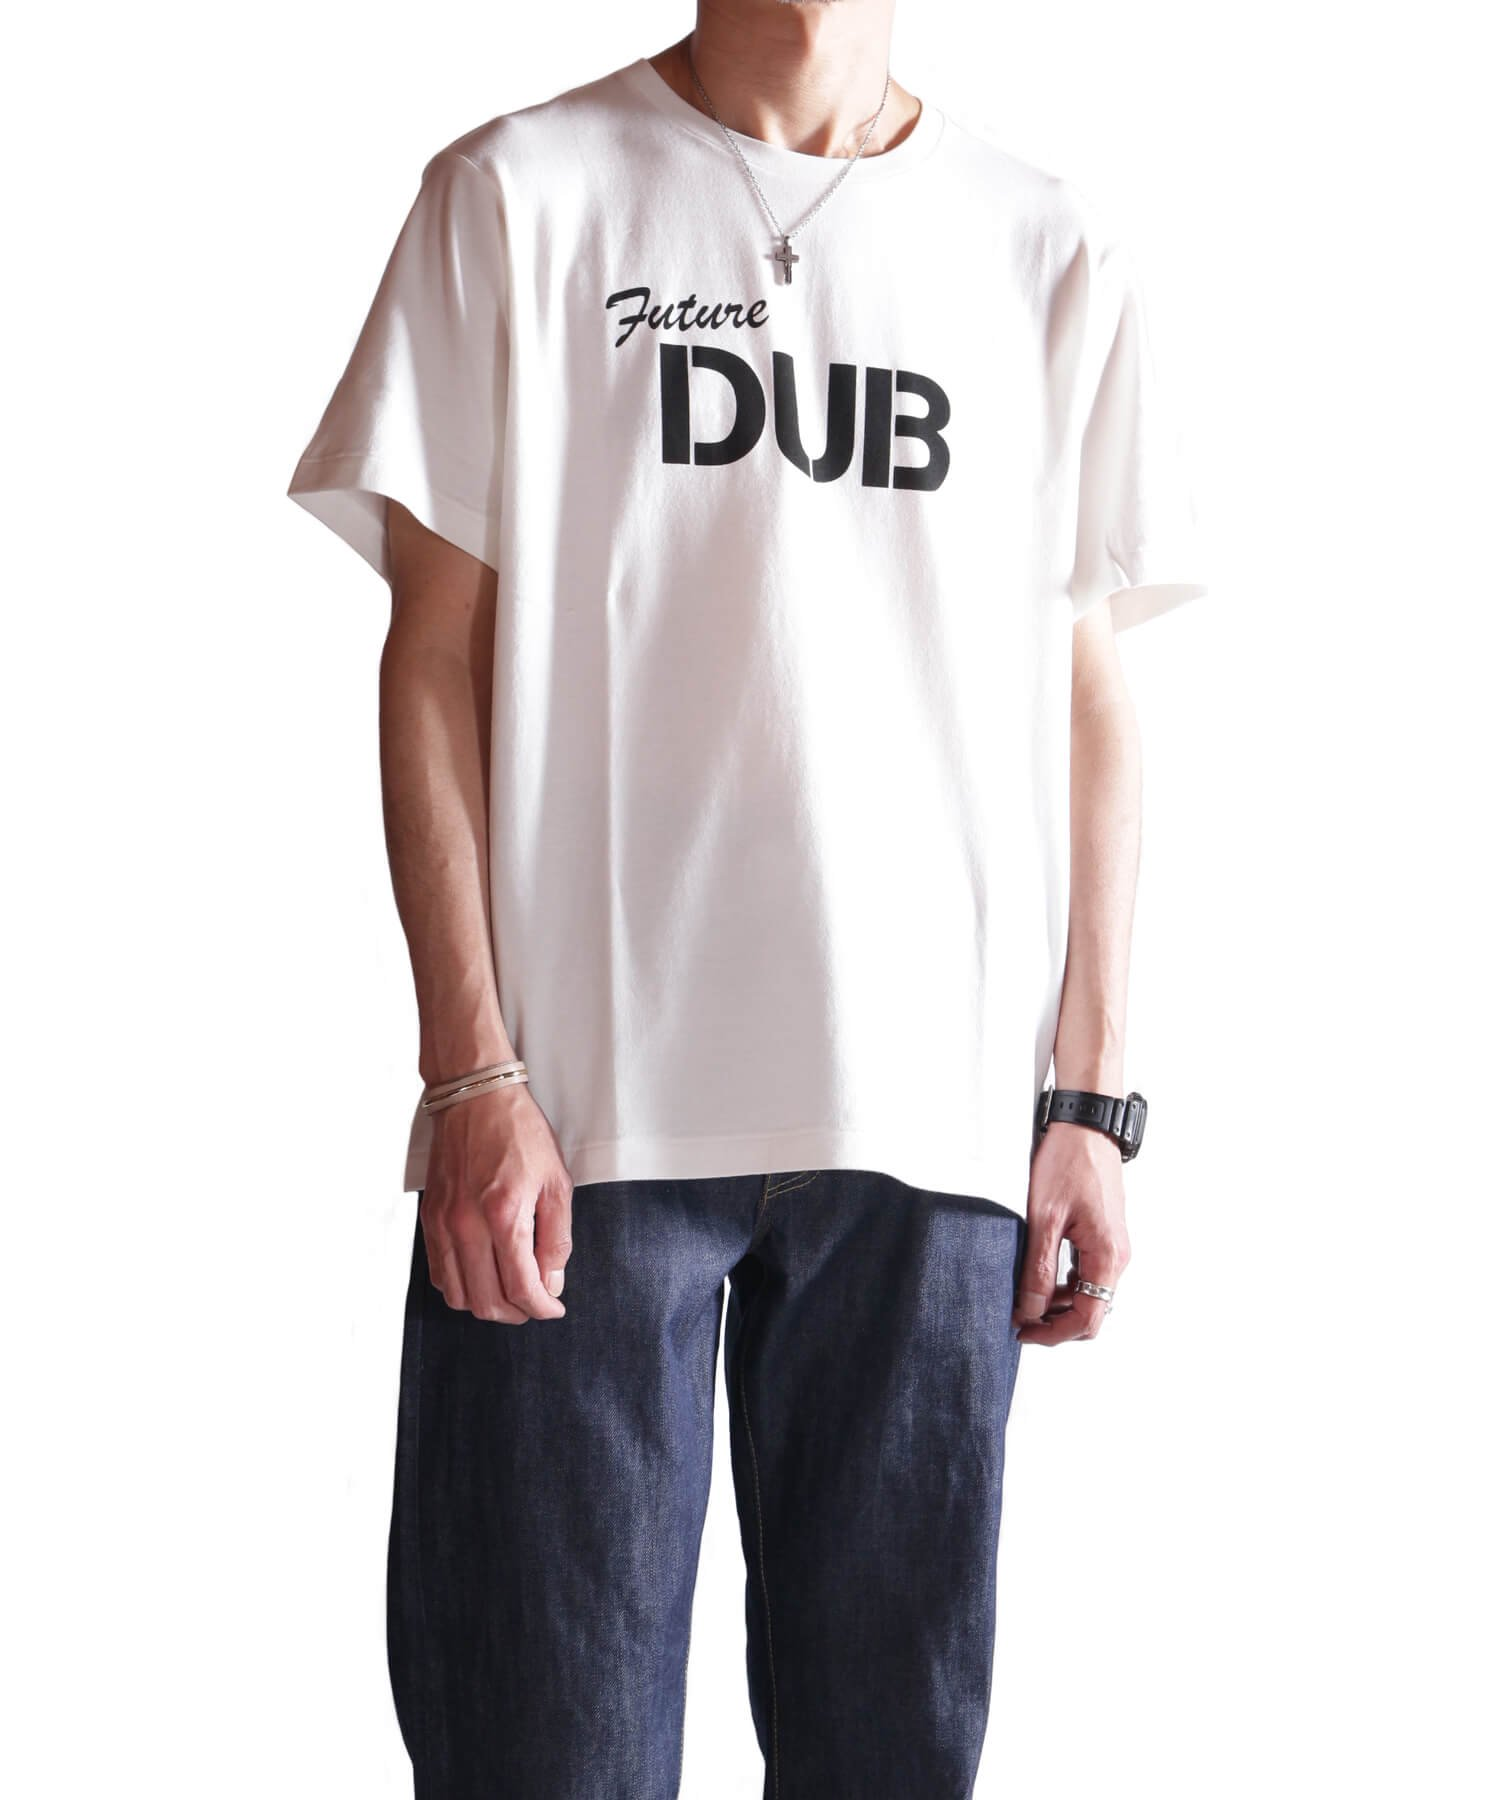 """RALEIGH / ラリー(RED MOTEL / レッドモーテル)   RALEIGH SOUND SYSTEM """"DUB OUR FUTURE"""" D.I.Y. T-SHIRTS (WH) 商品画像12"""